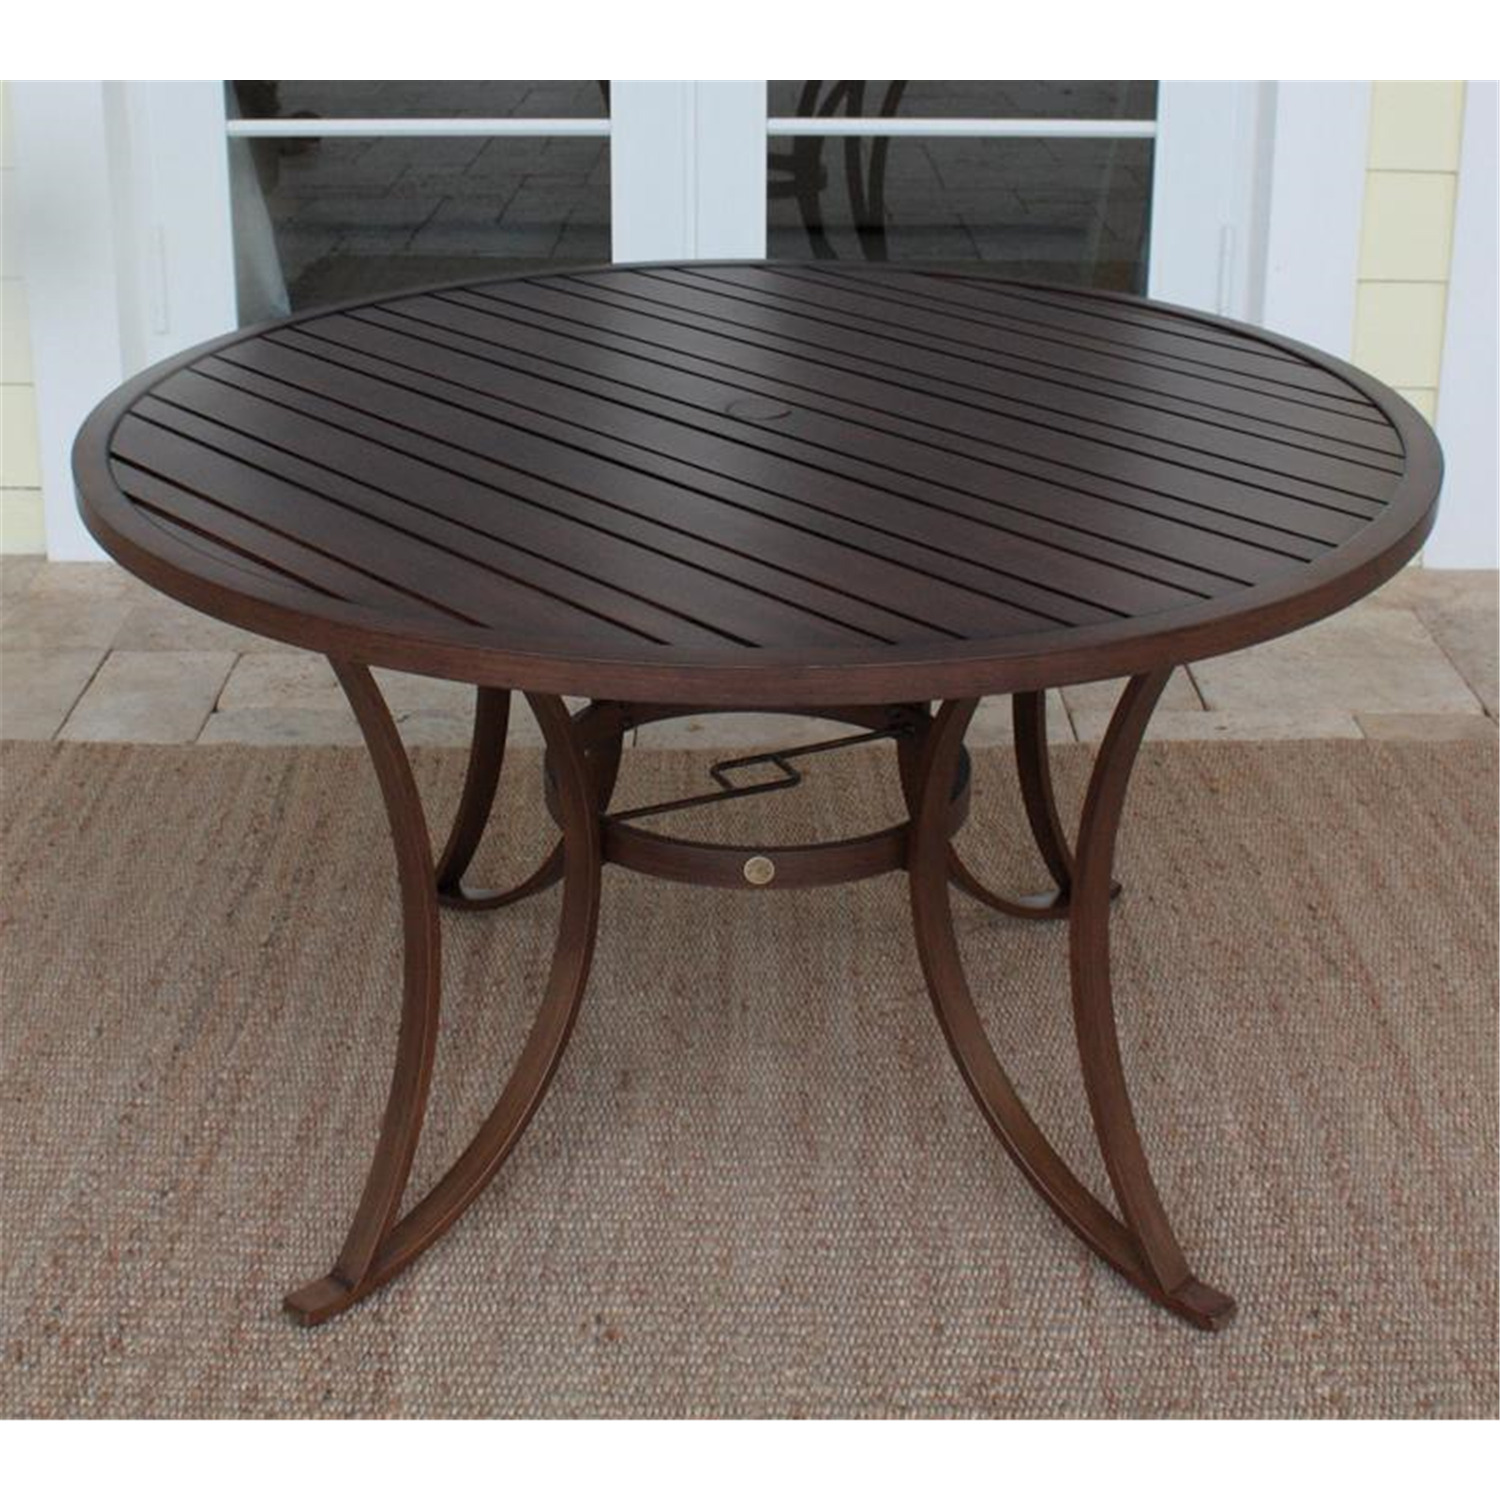 Hospitality Rattan Outdoor 48 Round Dining Table By OJ Commerce 923 316